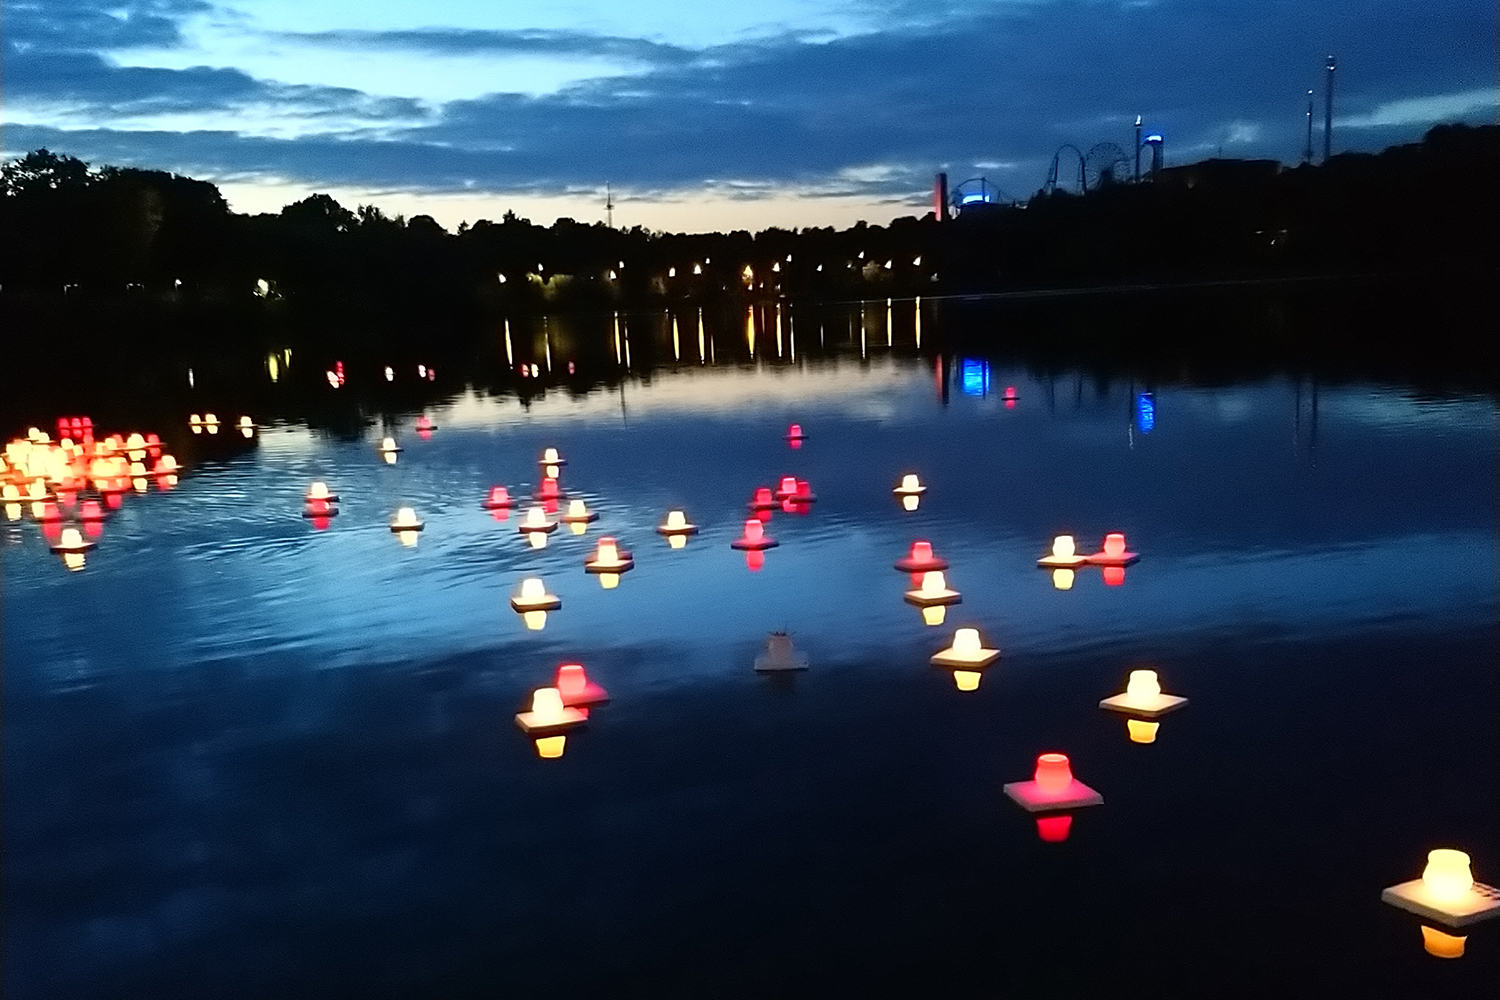 Photo of lanterns on water. A city is seen in the background. It is evening.